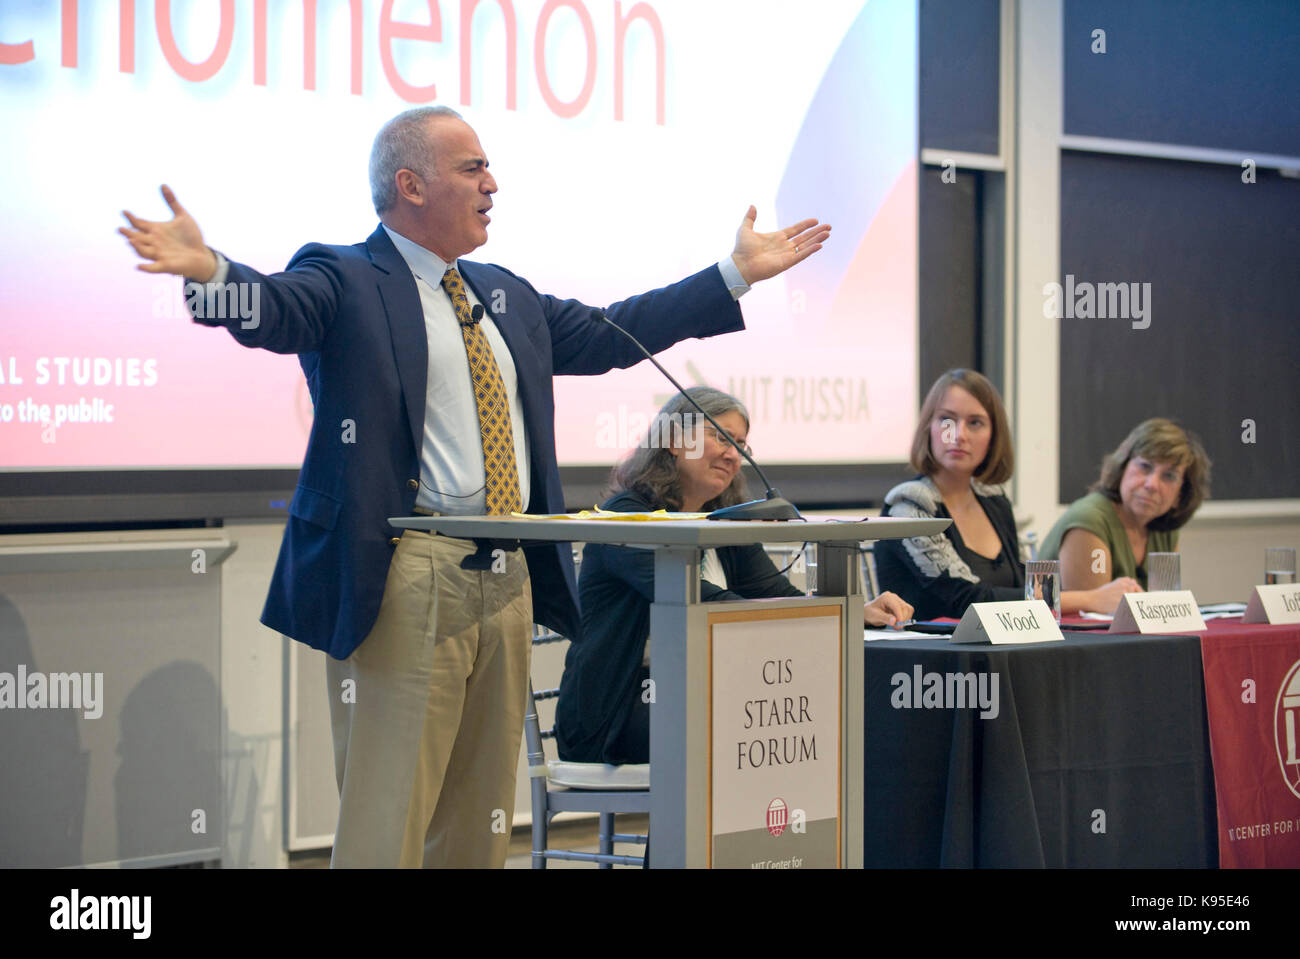 Russian dissident Garry Kasparov speaks from the Starr Forum podium at MIT. - Stock Image